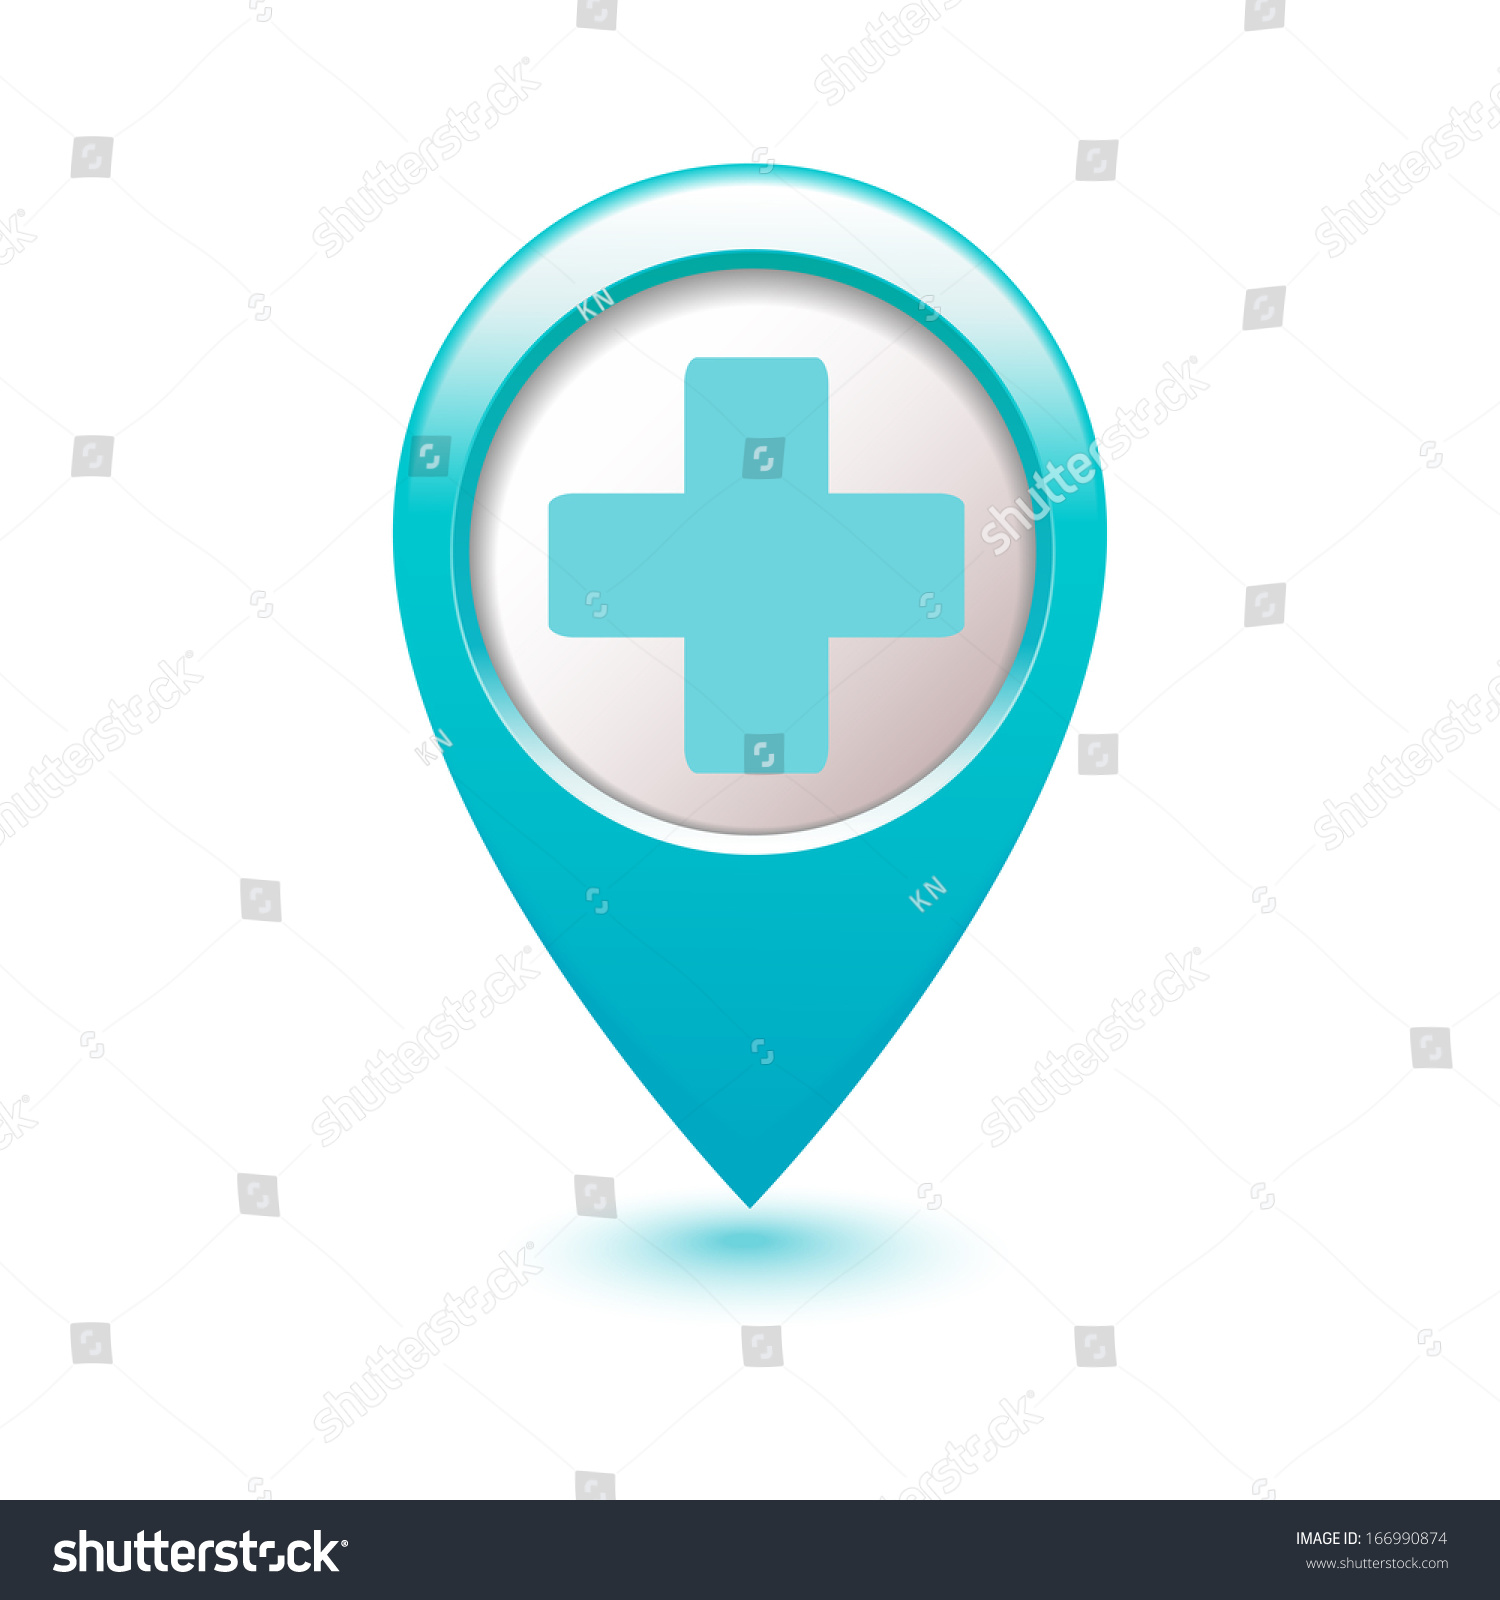 Medical icon cross on blue index stock vector 166990874 shutterstock medical icon cross on blue index cards biocorpaavc Gallery